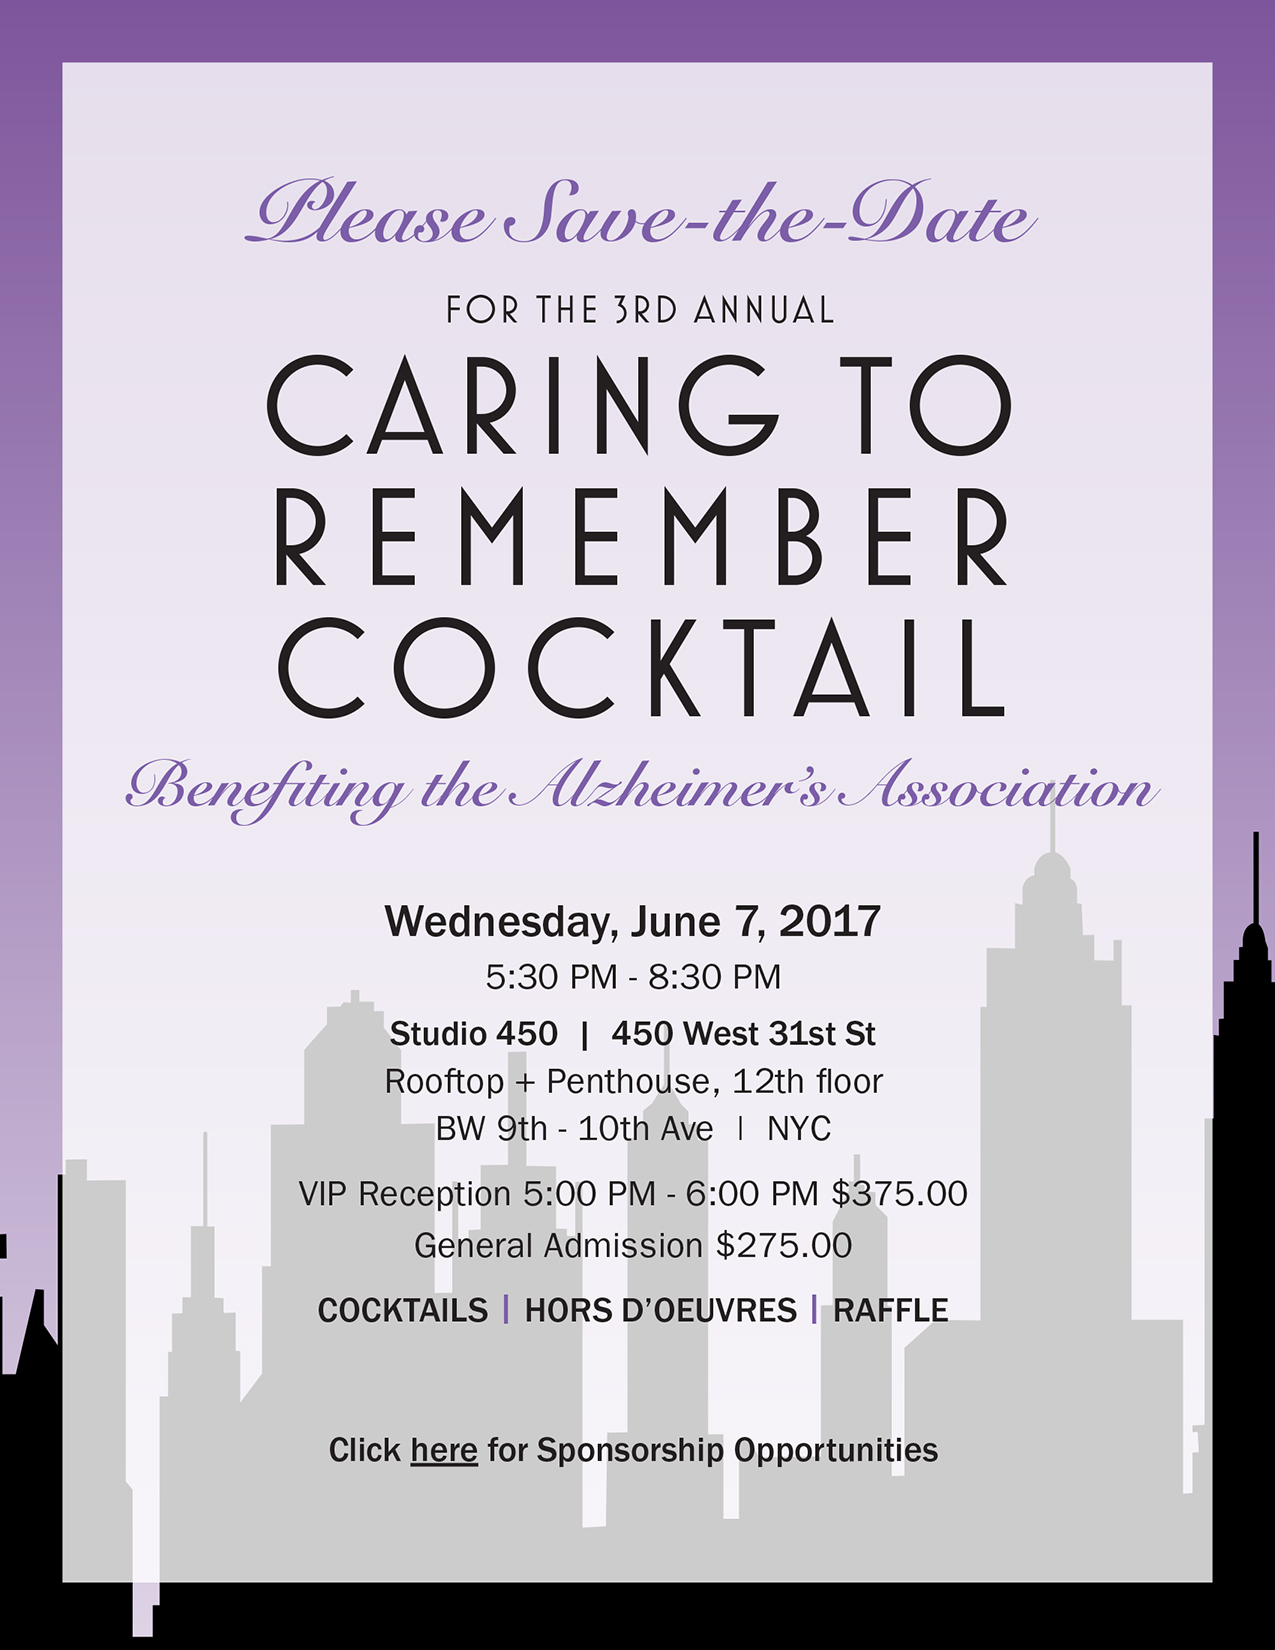 Alzheimers Save the Date (1).jpg